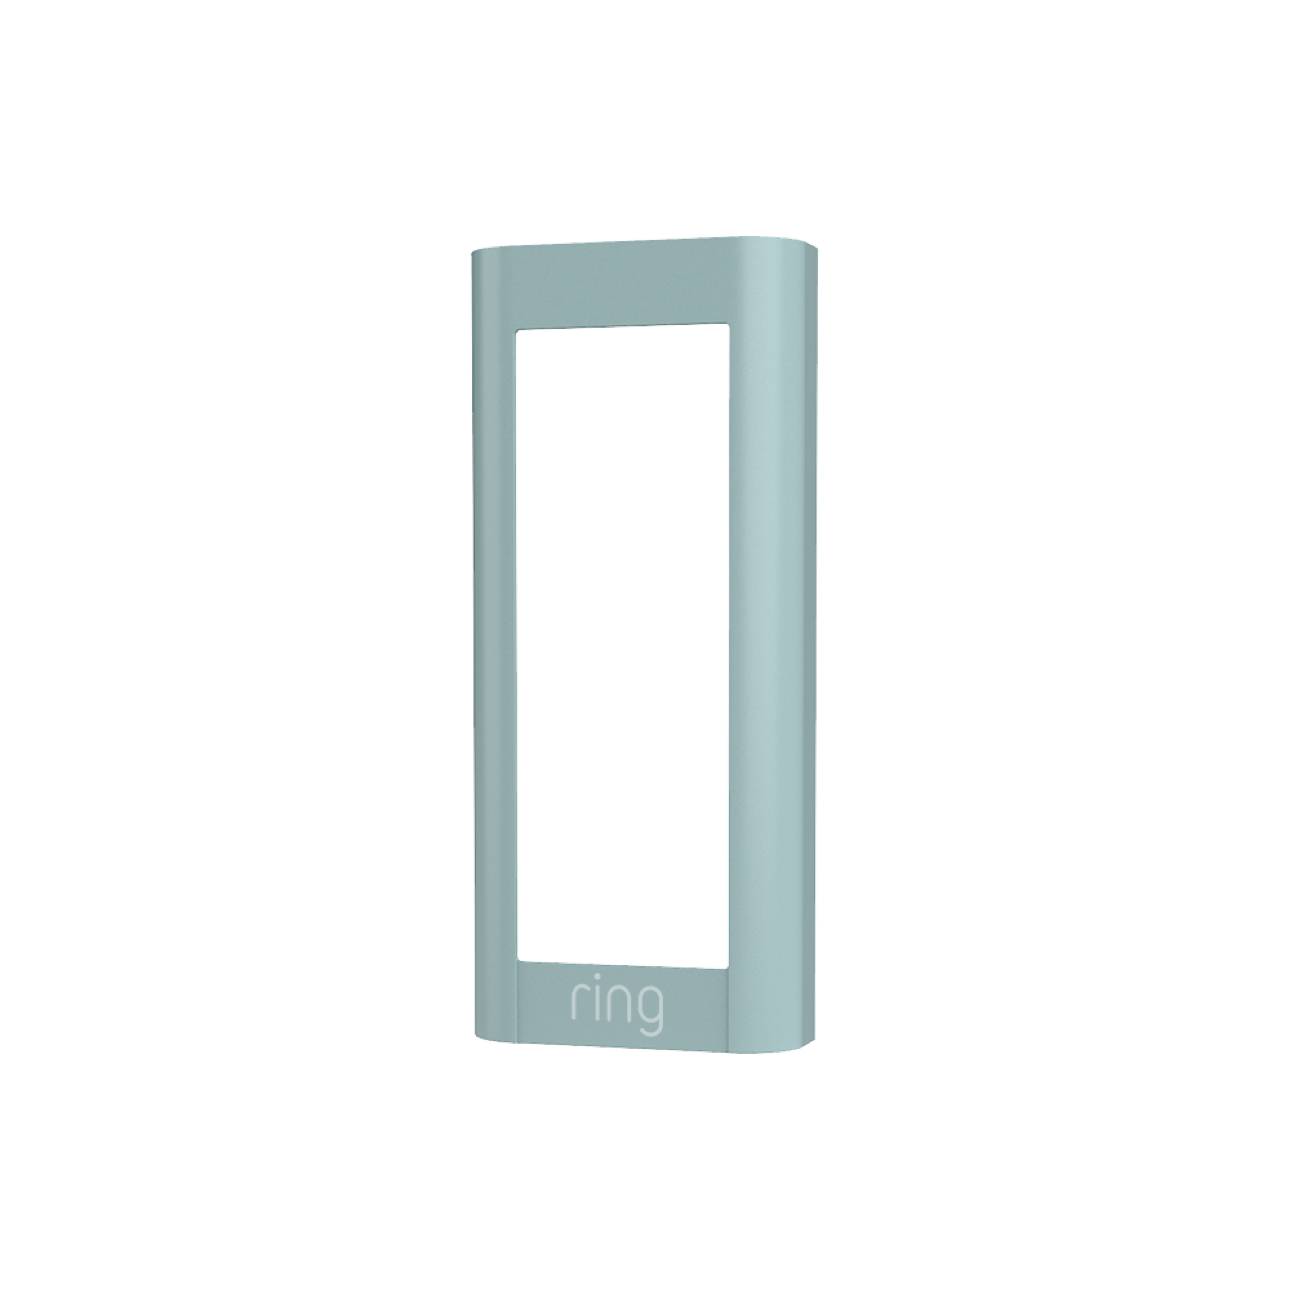 products/JF_interchangeableFaceplate_blueprint_1029x1029_7fbae7b4-4c01-495f-8e94-5214d84a1feb.png